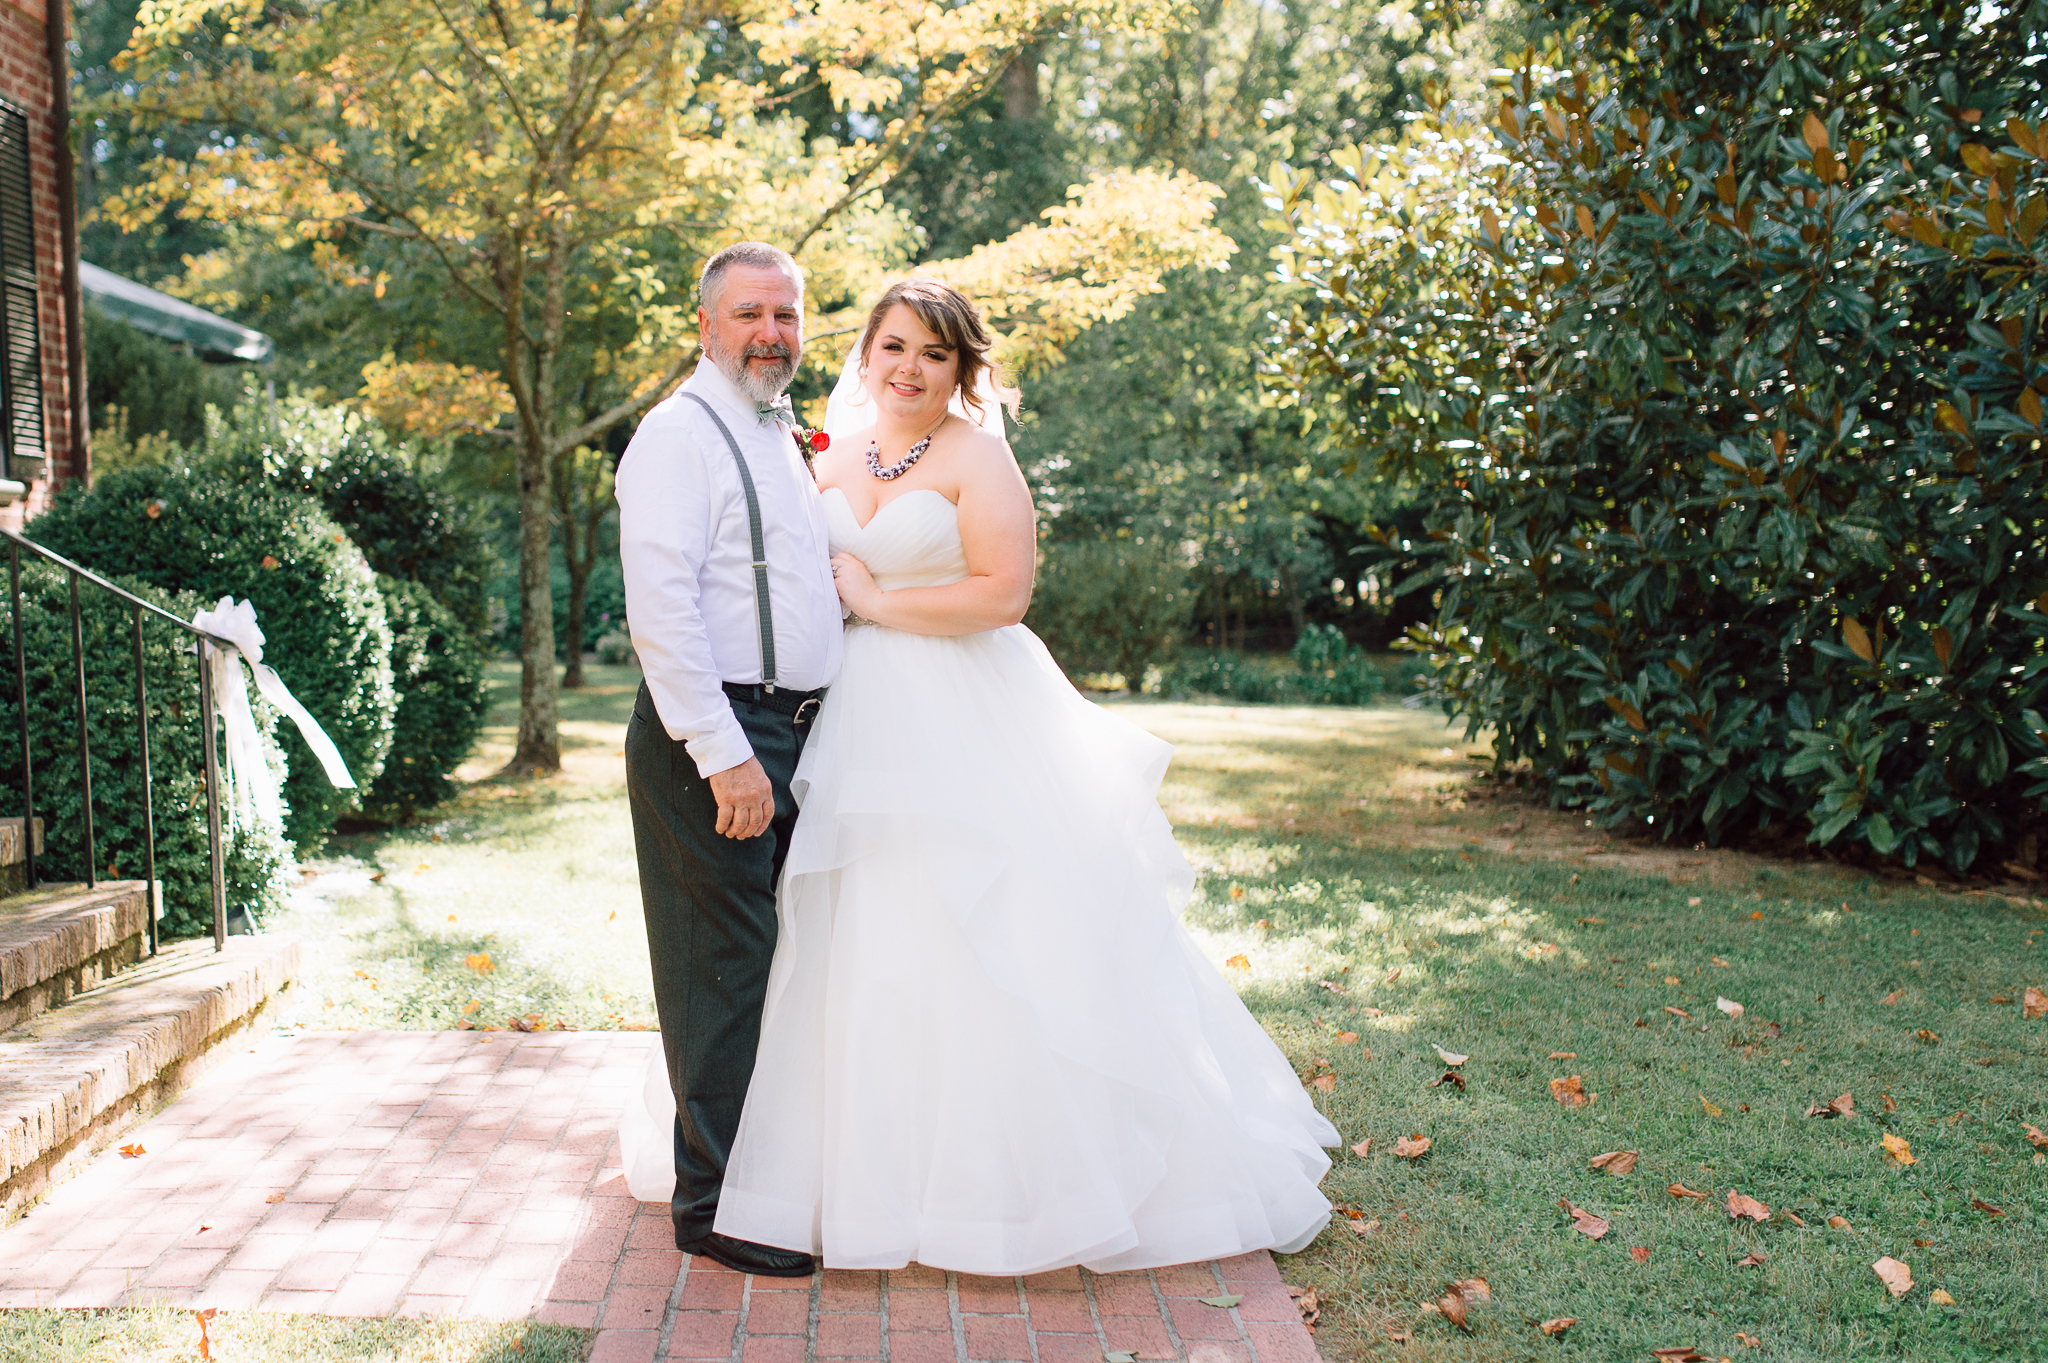 youseephotography_virginiawedding_fall_WallaceManor_EmilyCody (31).jpg